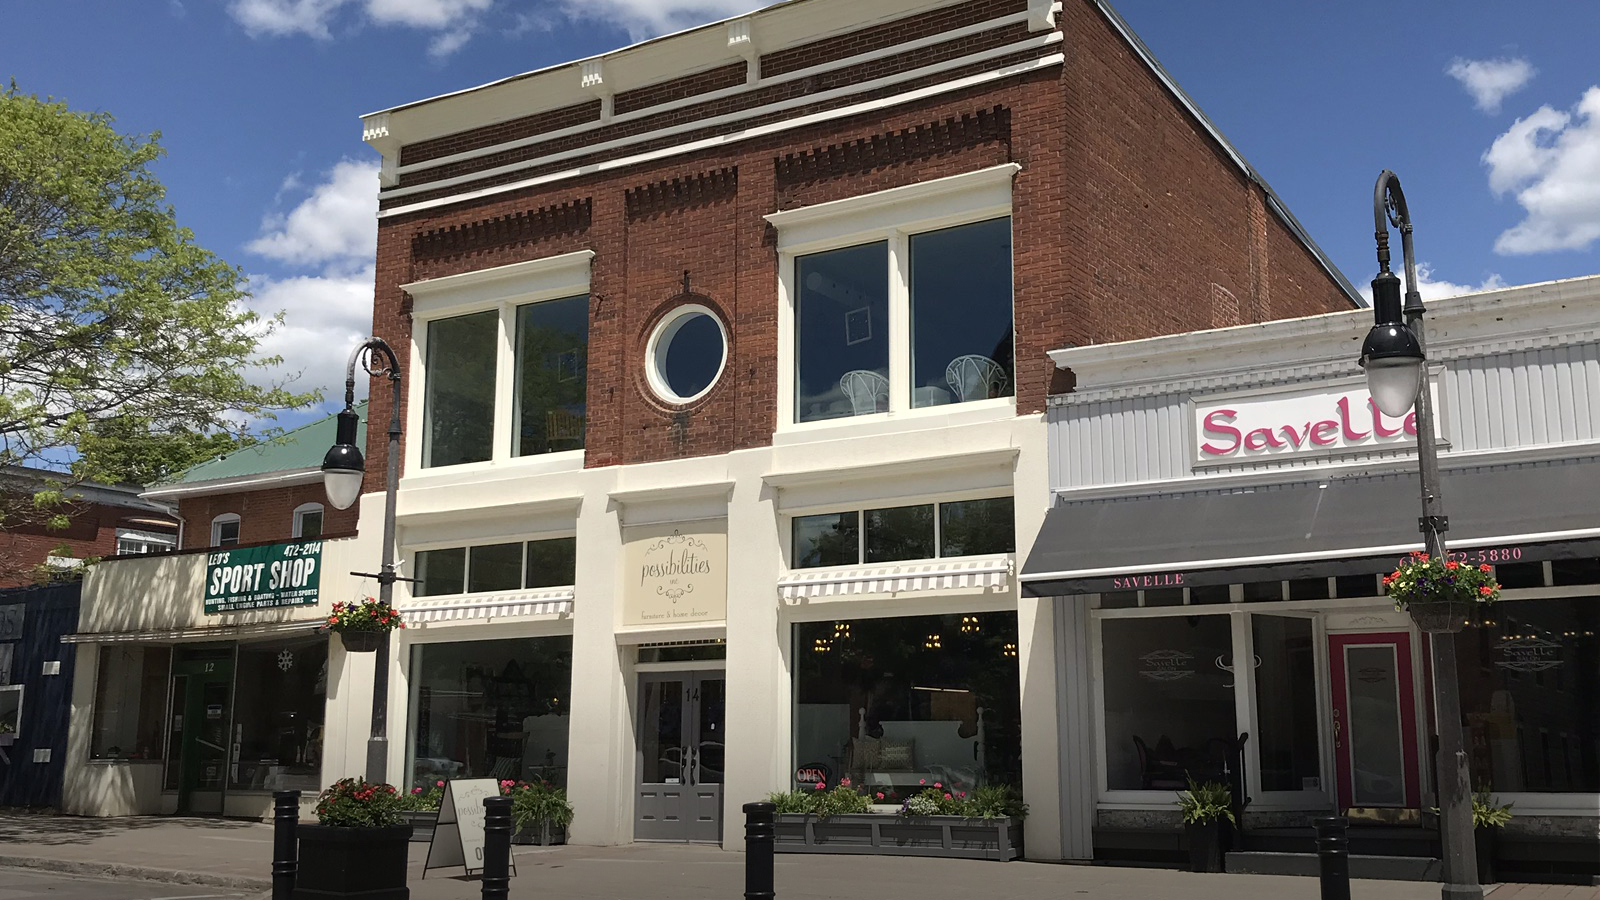 Home decor store  Possibilities  has operated for five years in our community and recently expanded into a historical building.